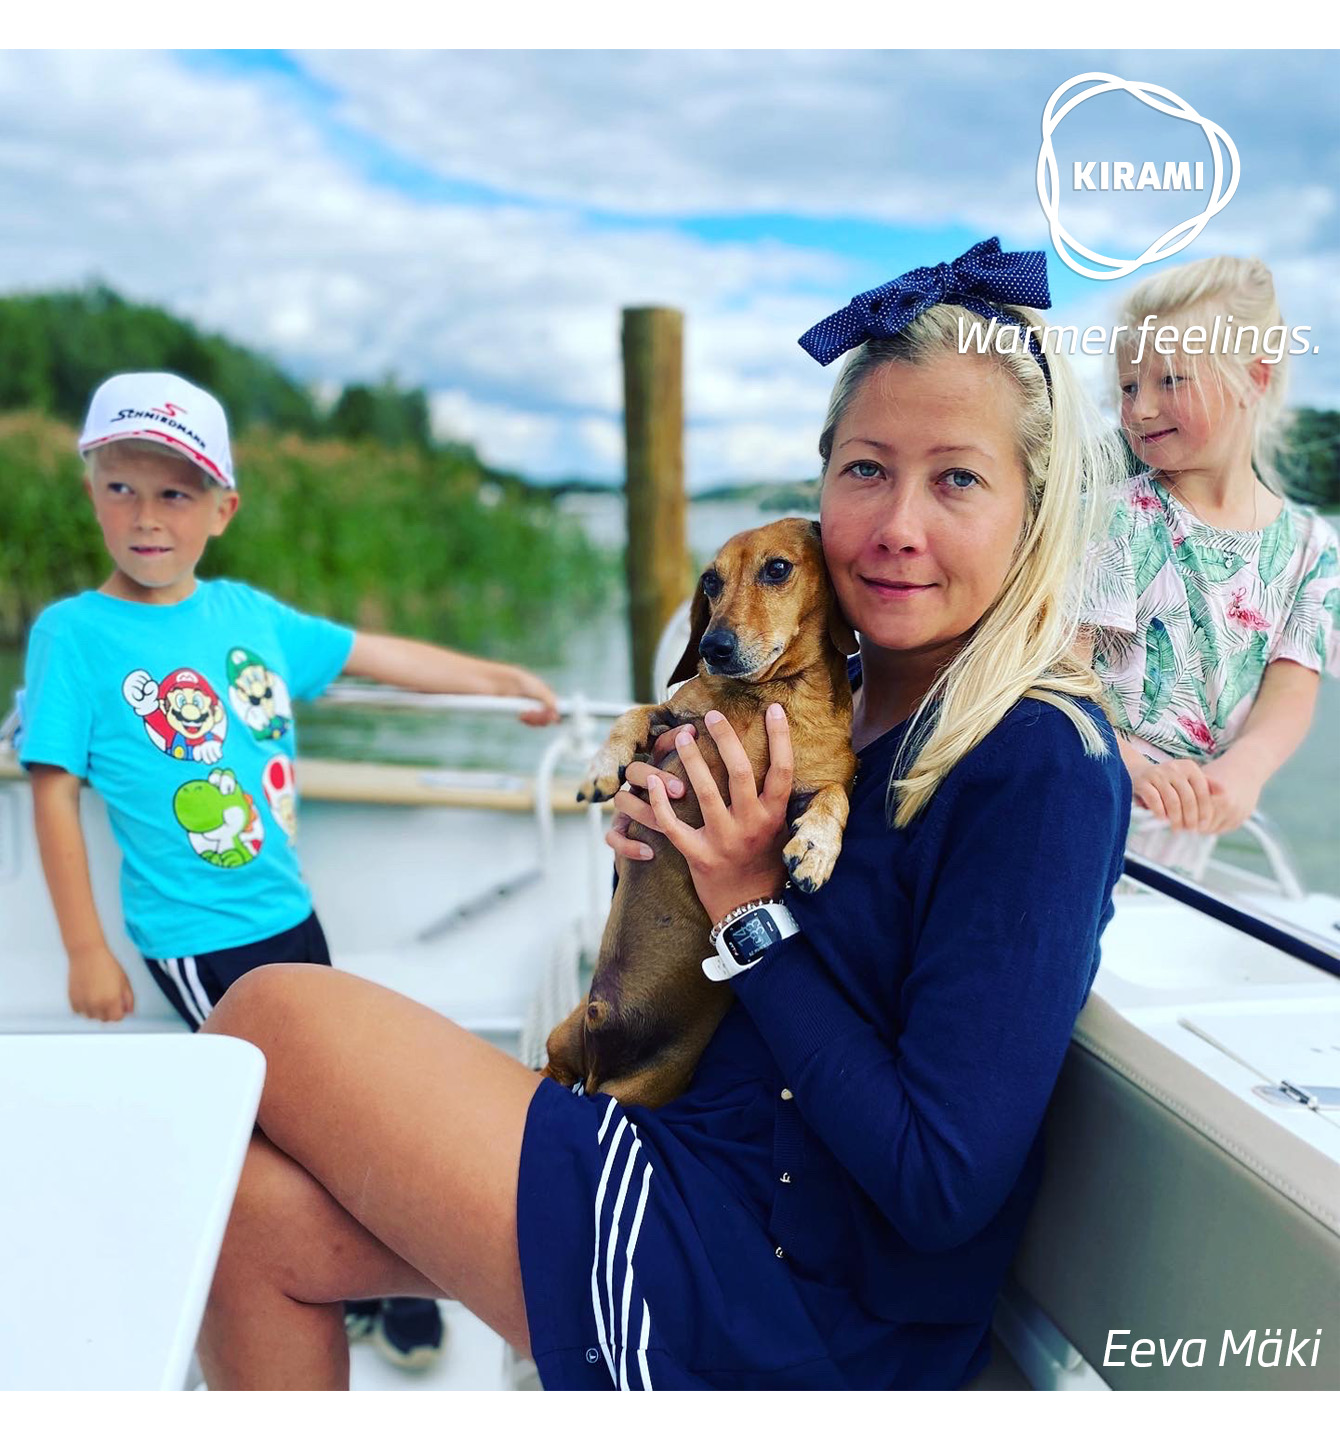 Kirami thanks Onni the dog and the Mäki family for a good story and great pictures | Kirami